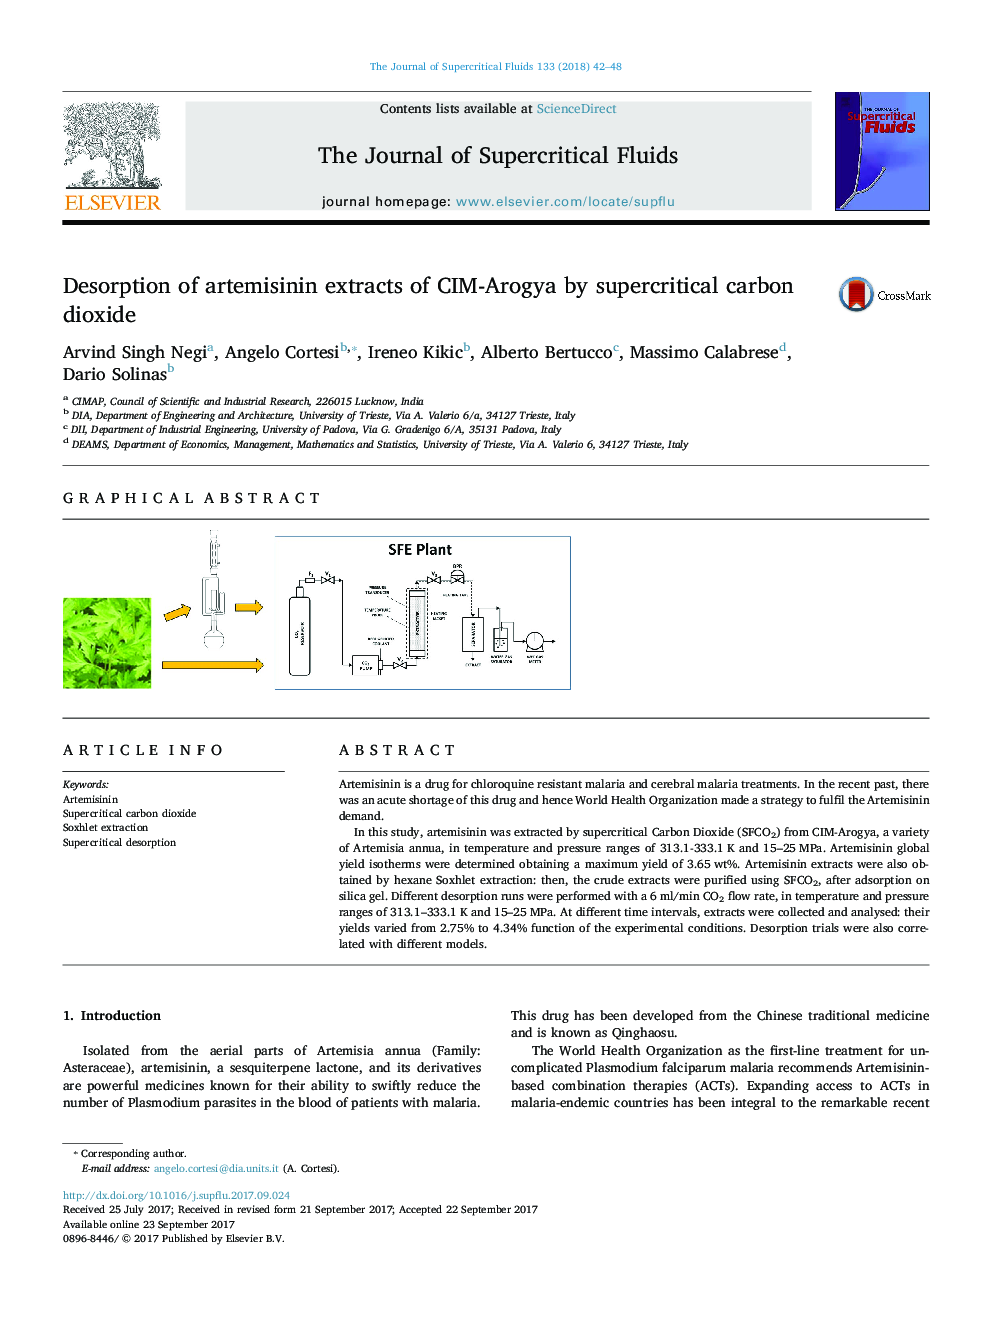 Desorption of artemisinin extracts of CIM-Arogya by supercritical carbon dioxide